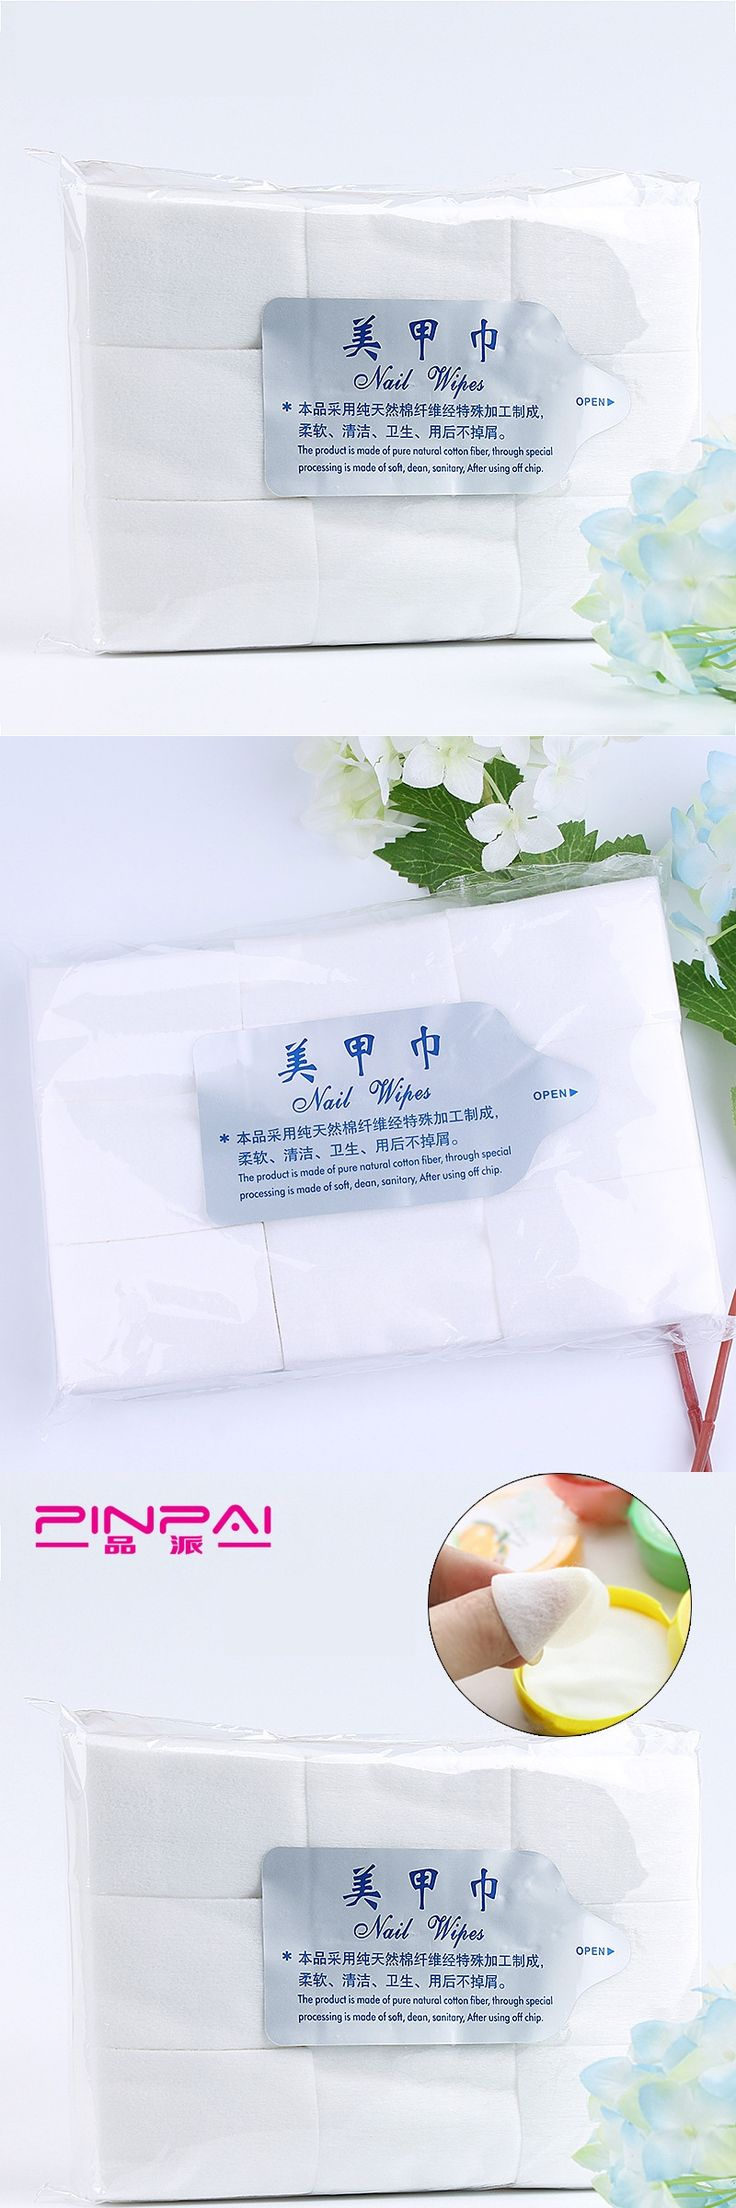 700pcs/Pack Nail Tools Bath Manicure Gel Nail Polish Remover Lint-Free Wipes Cotton Napkins For Nails Remover Cotton 6*4.3cm